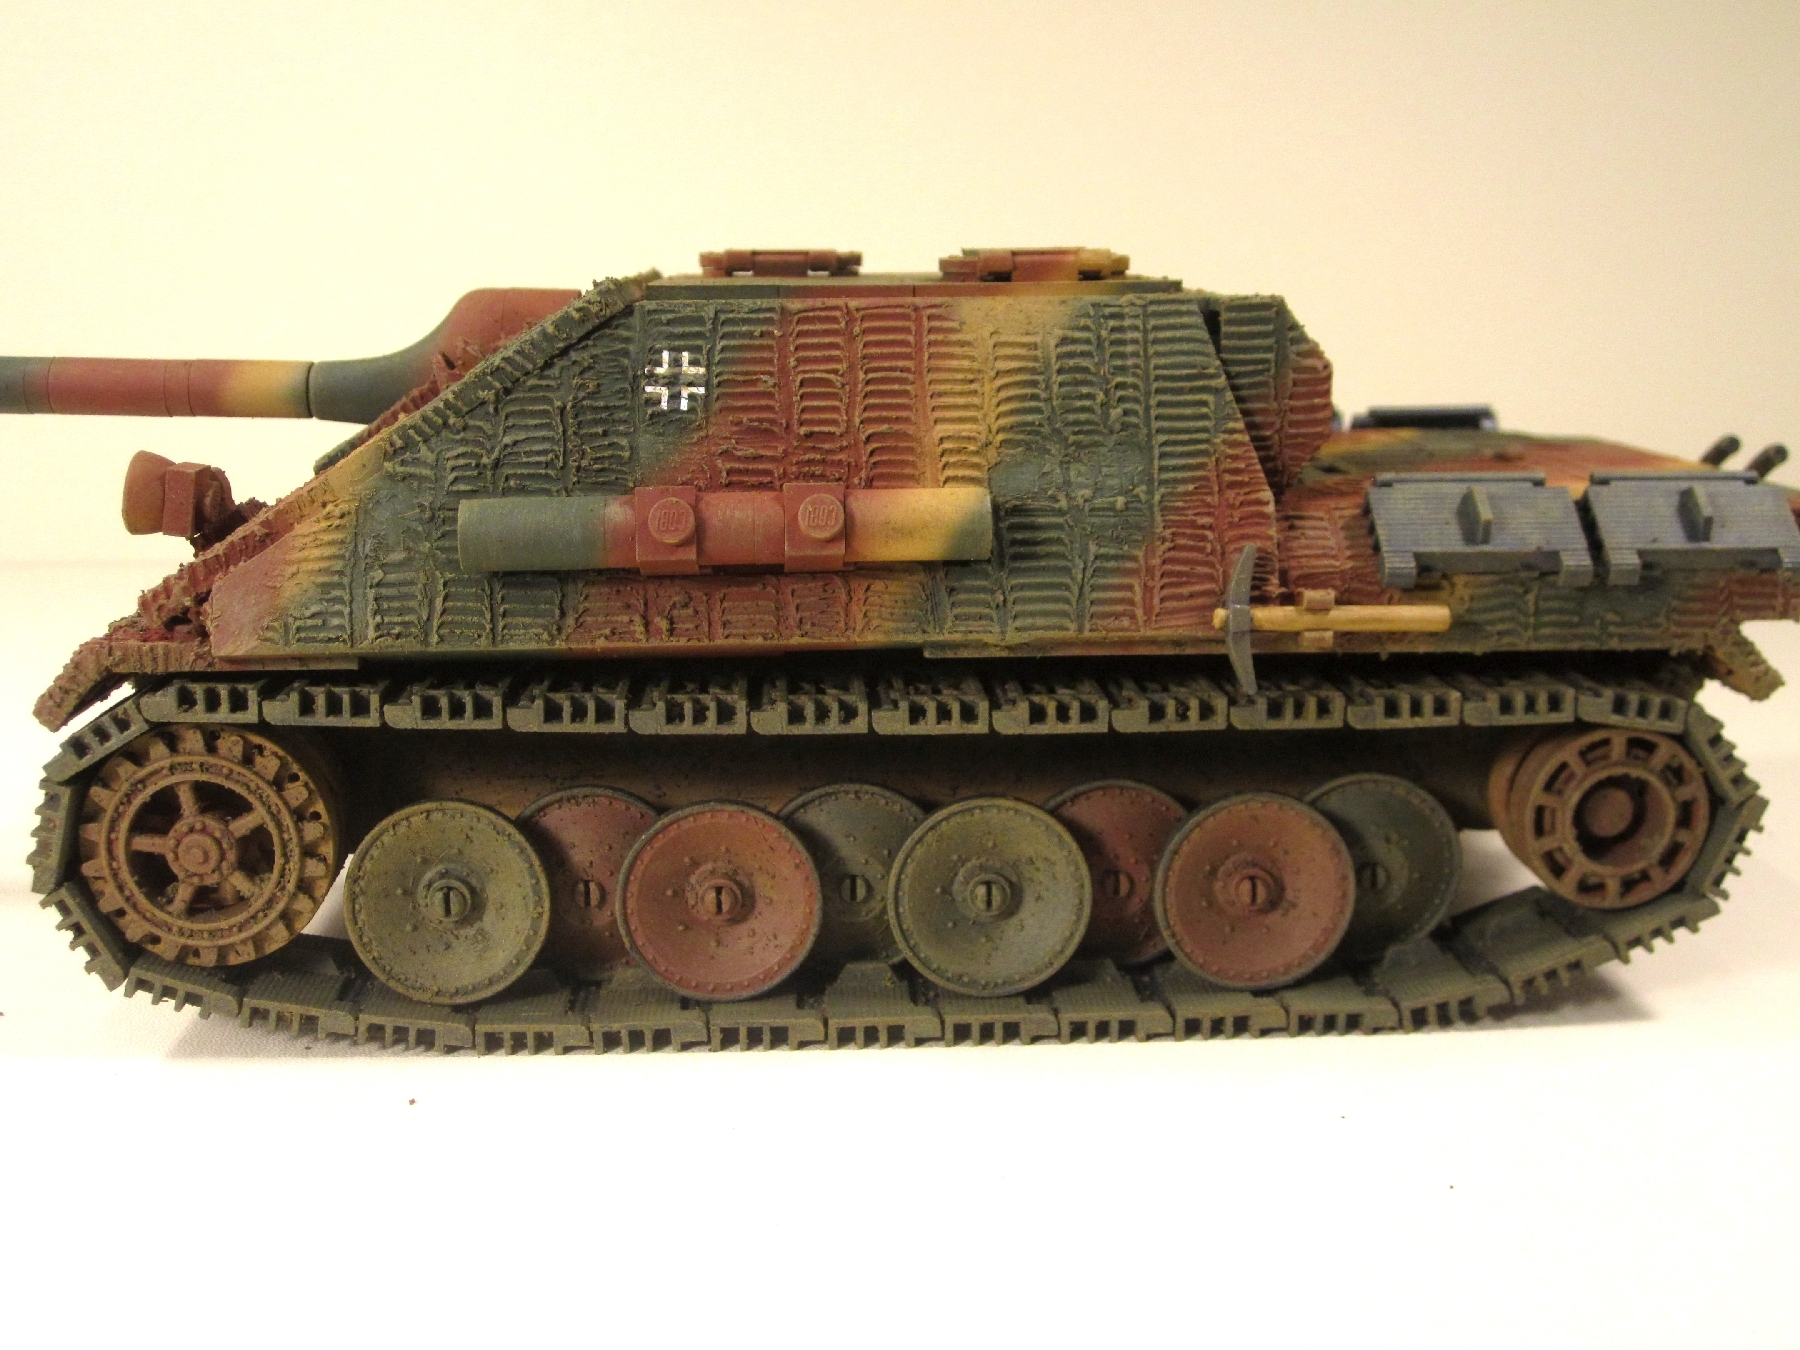 Cobi_2473_Jagdpanther_www.super-bricks.de_camouflage_paint_Small_Army_Tarnung_14